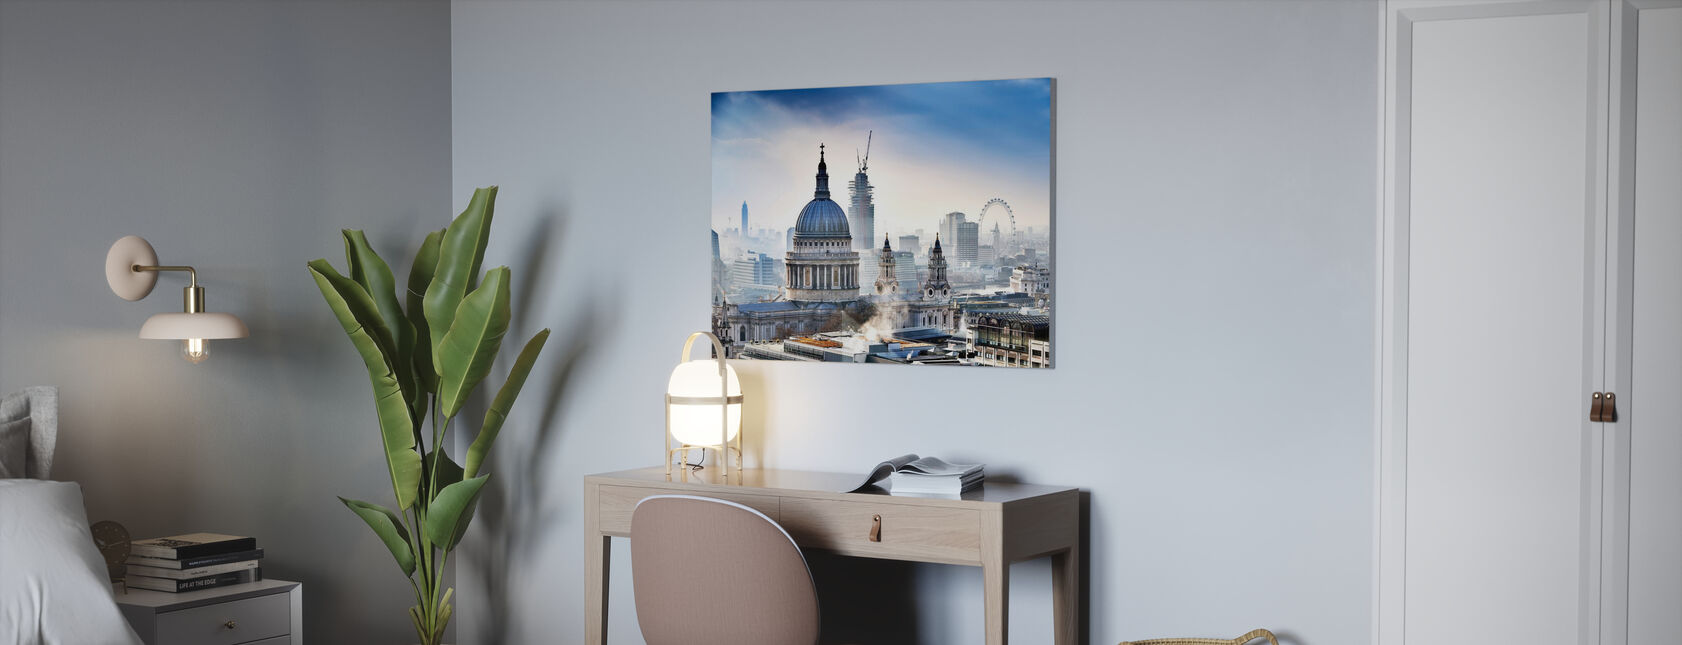 St Pauls Cathedral - Canvas print - Office